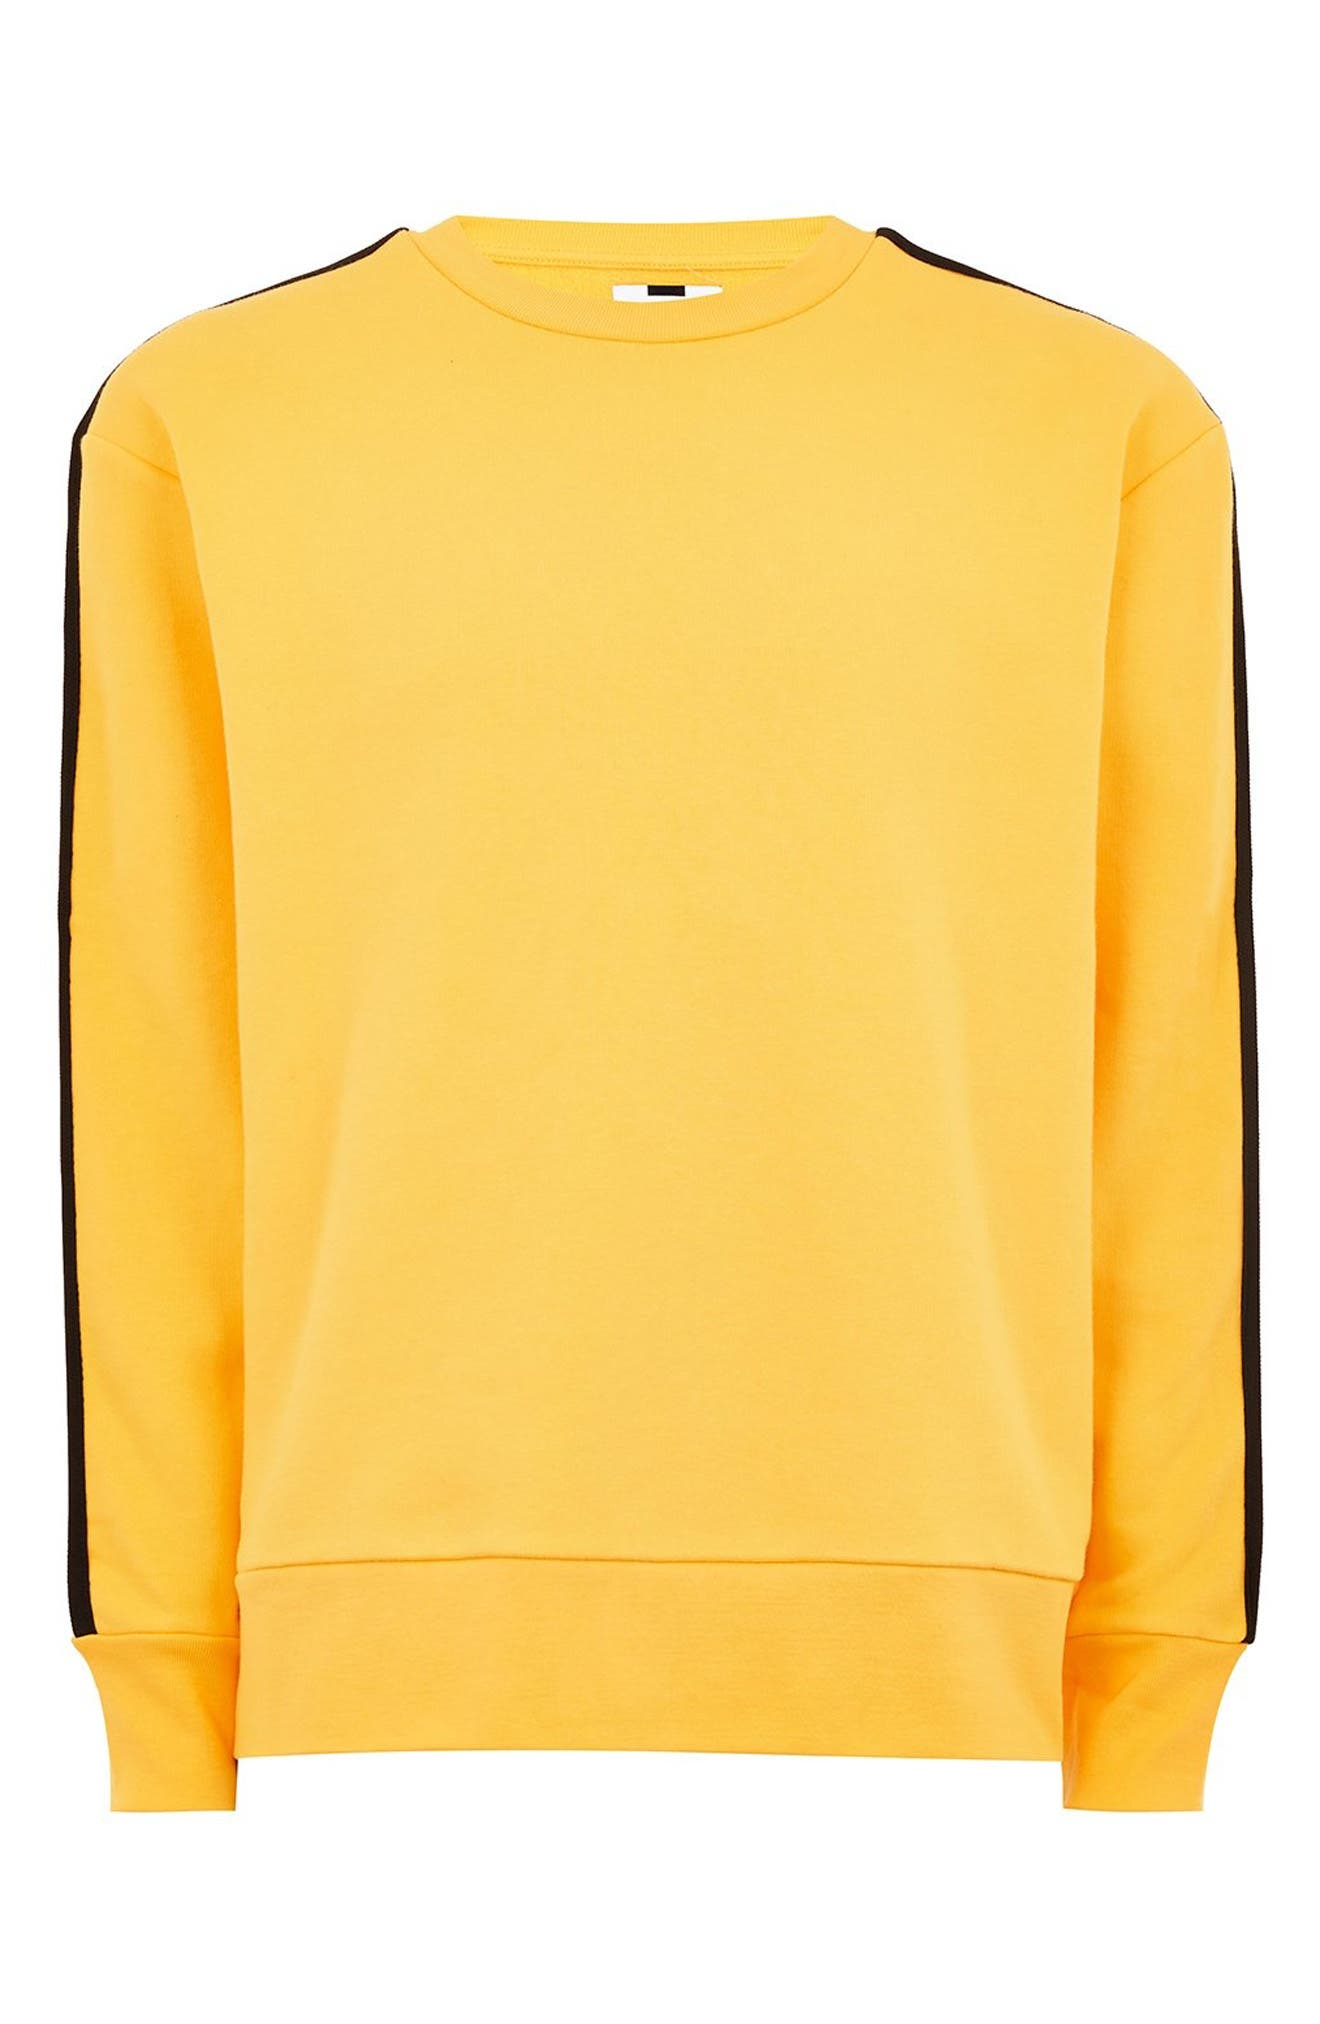 Taped Classic Fit Sweatshirt,                             Alternate thumbnail 5, color,                             700